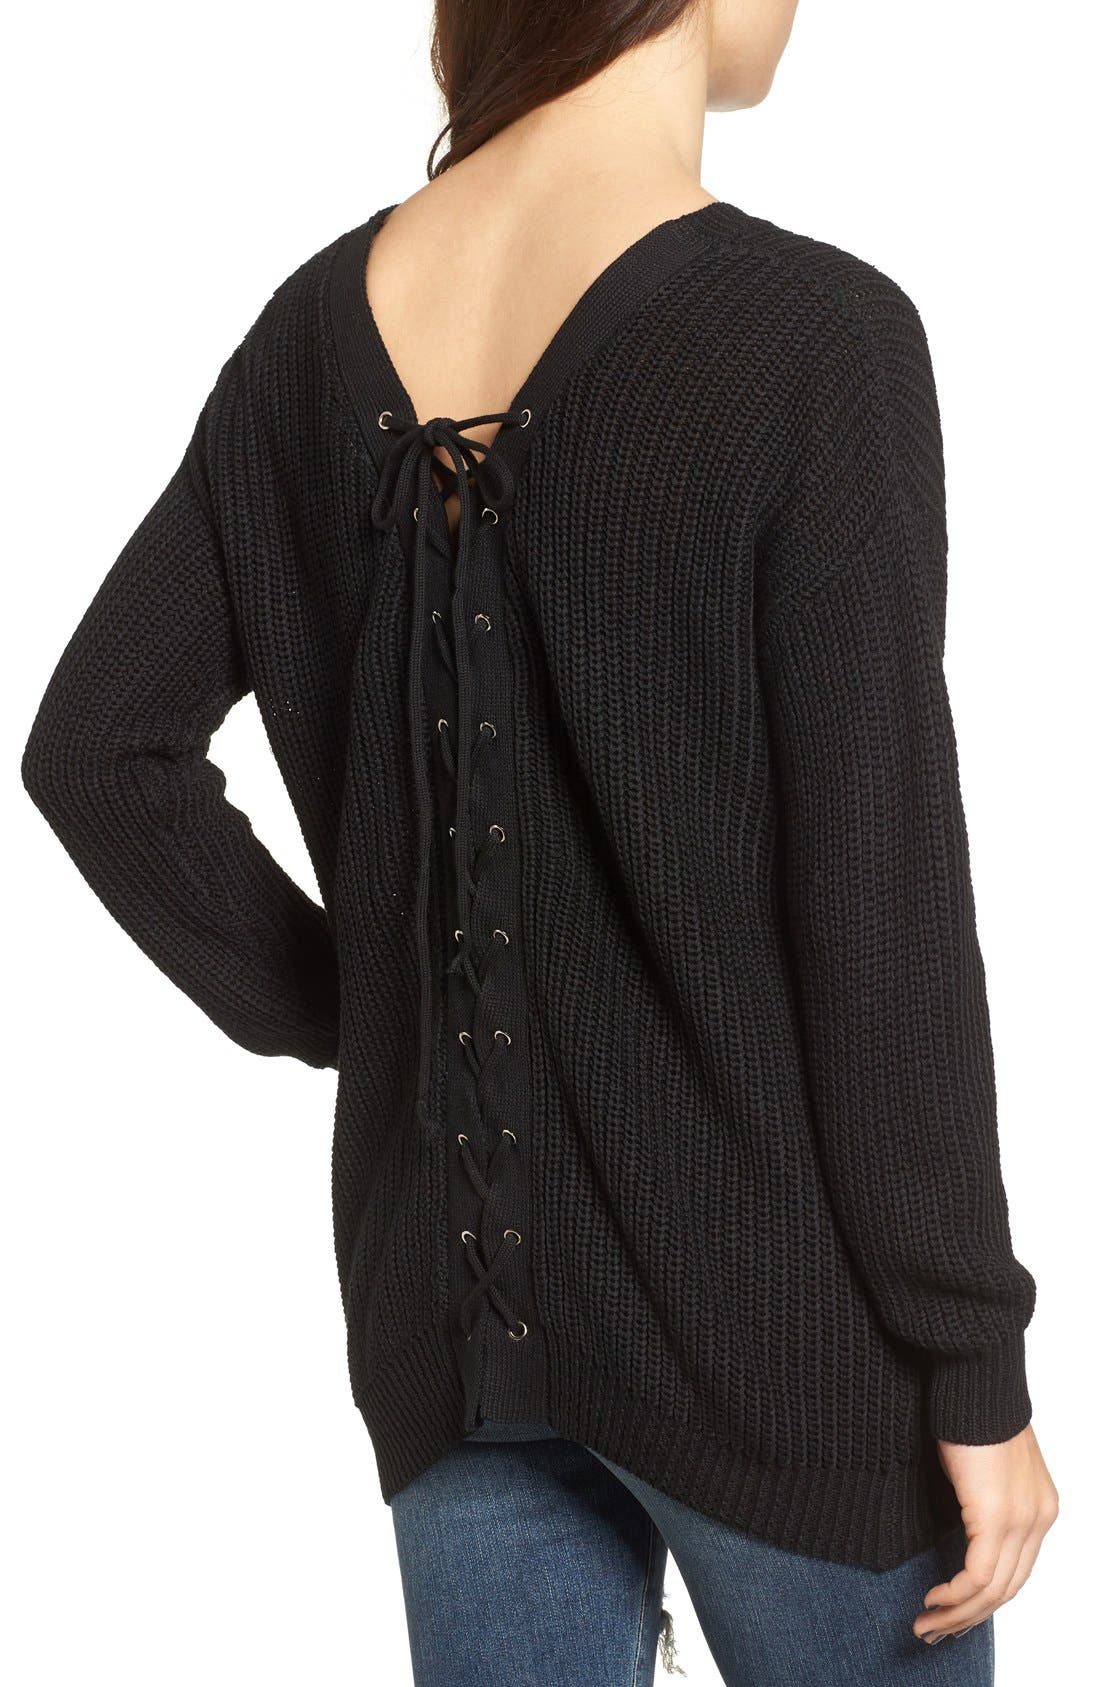 Lace-Up Back Sweater,                             Main thumbnail 1, color,                             001